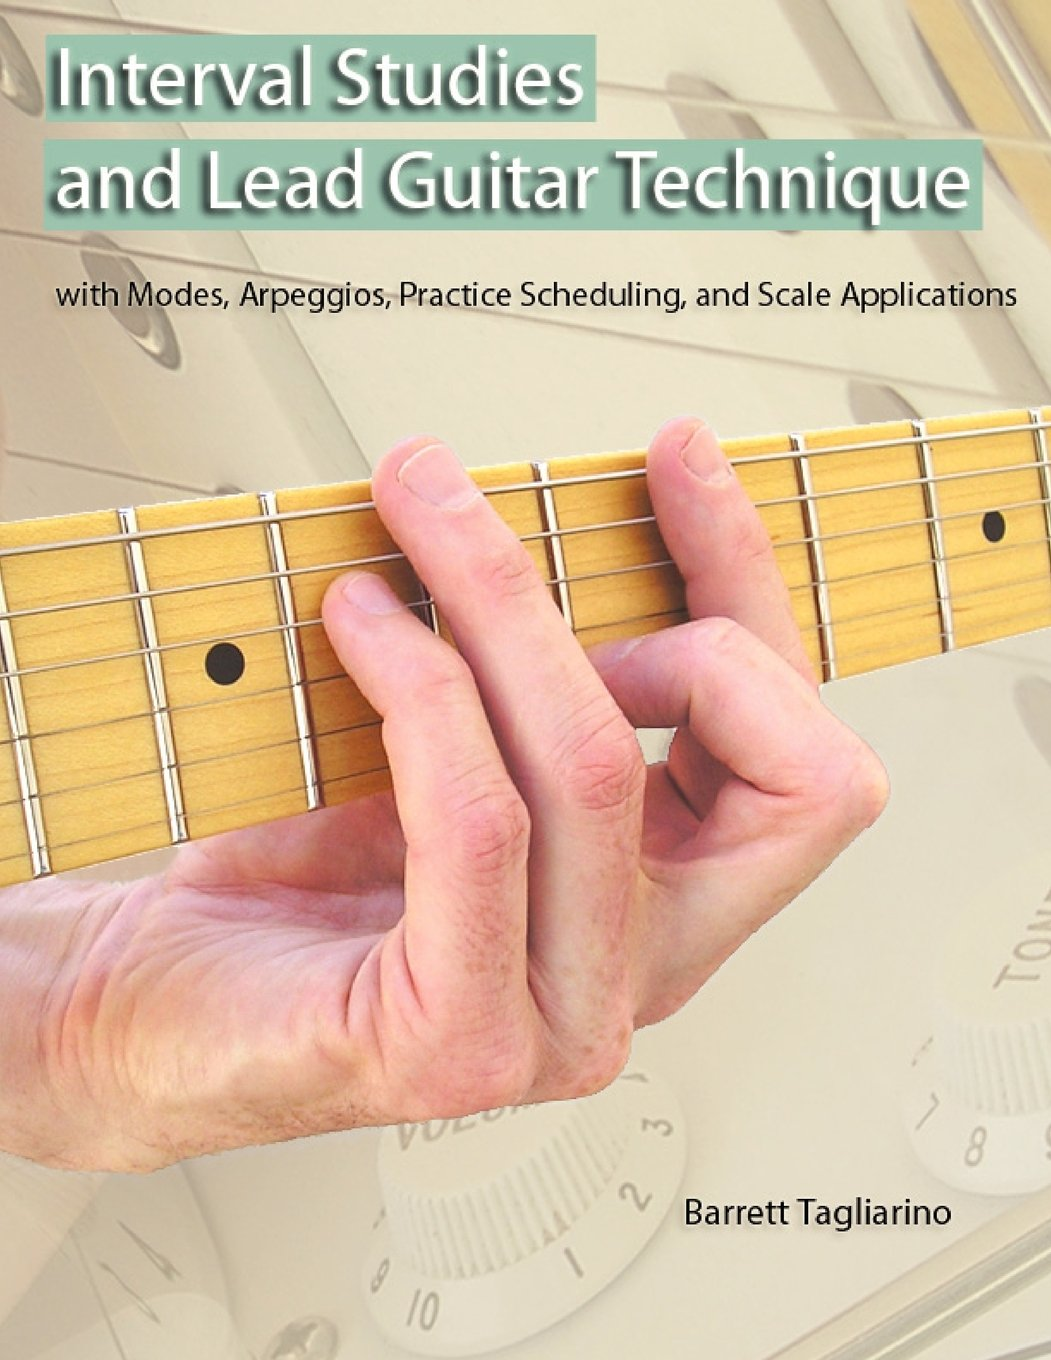 Interval studies and lead guitar technique.